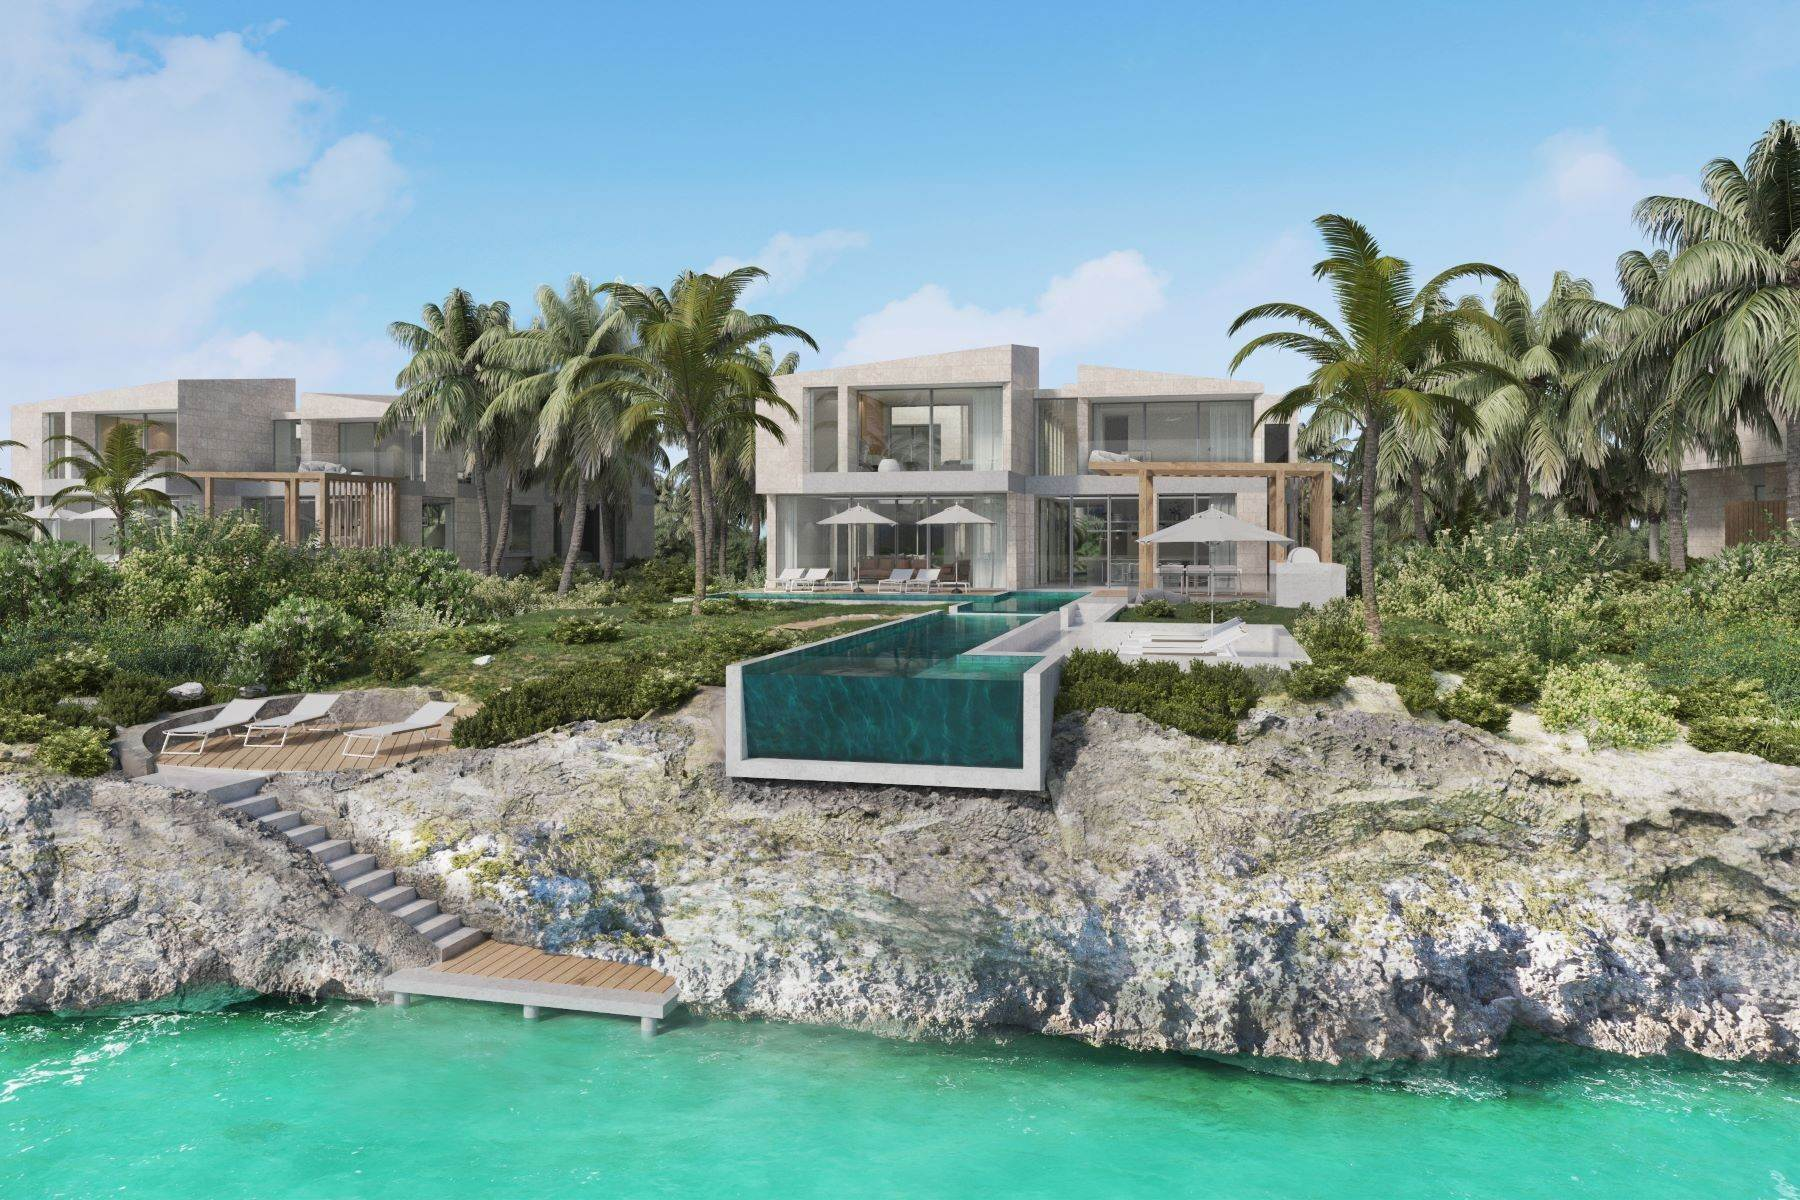 Single Family Homes por un Venta en SOUTH BANK - THE OCEAN ESTATE I - SHOAL VILLA 15 South Bank, Long Bay, Providenciales Islas Turcas y Caicos